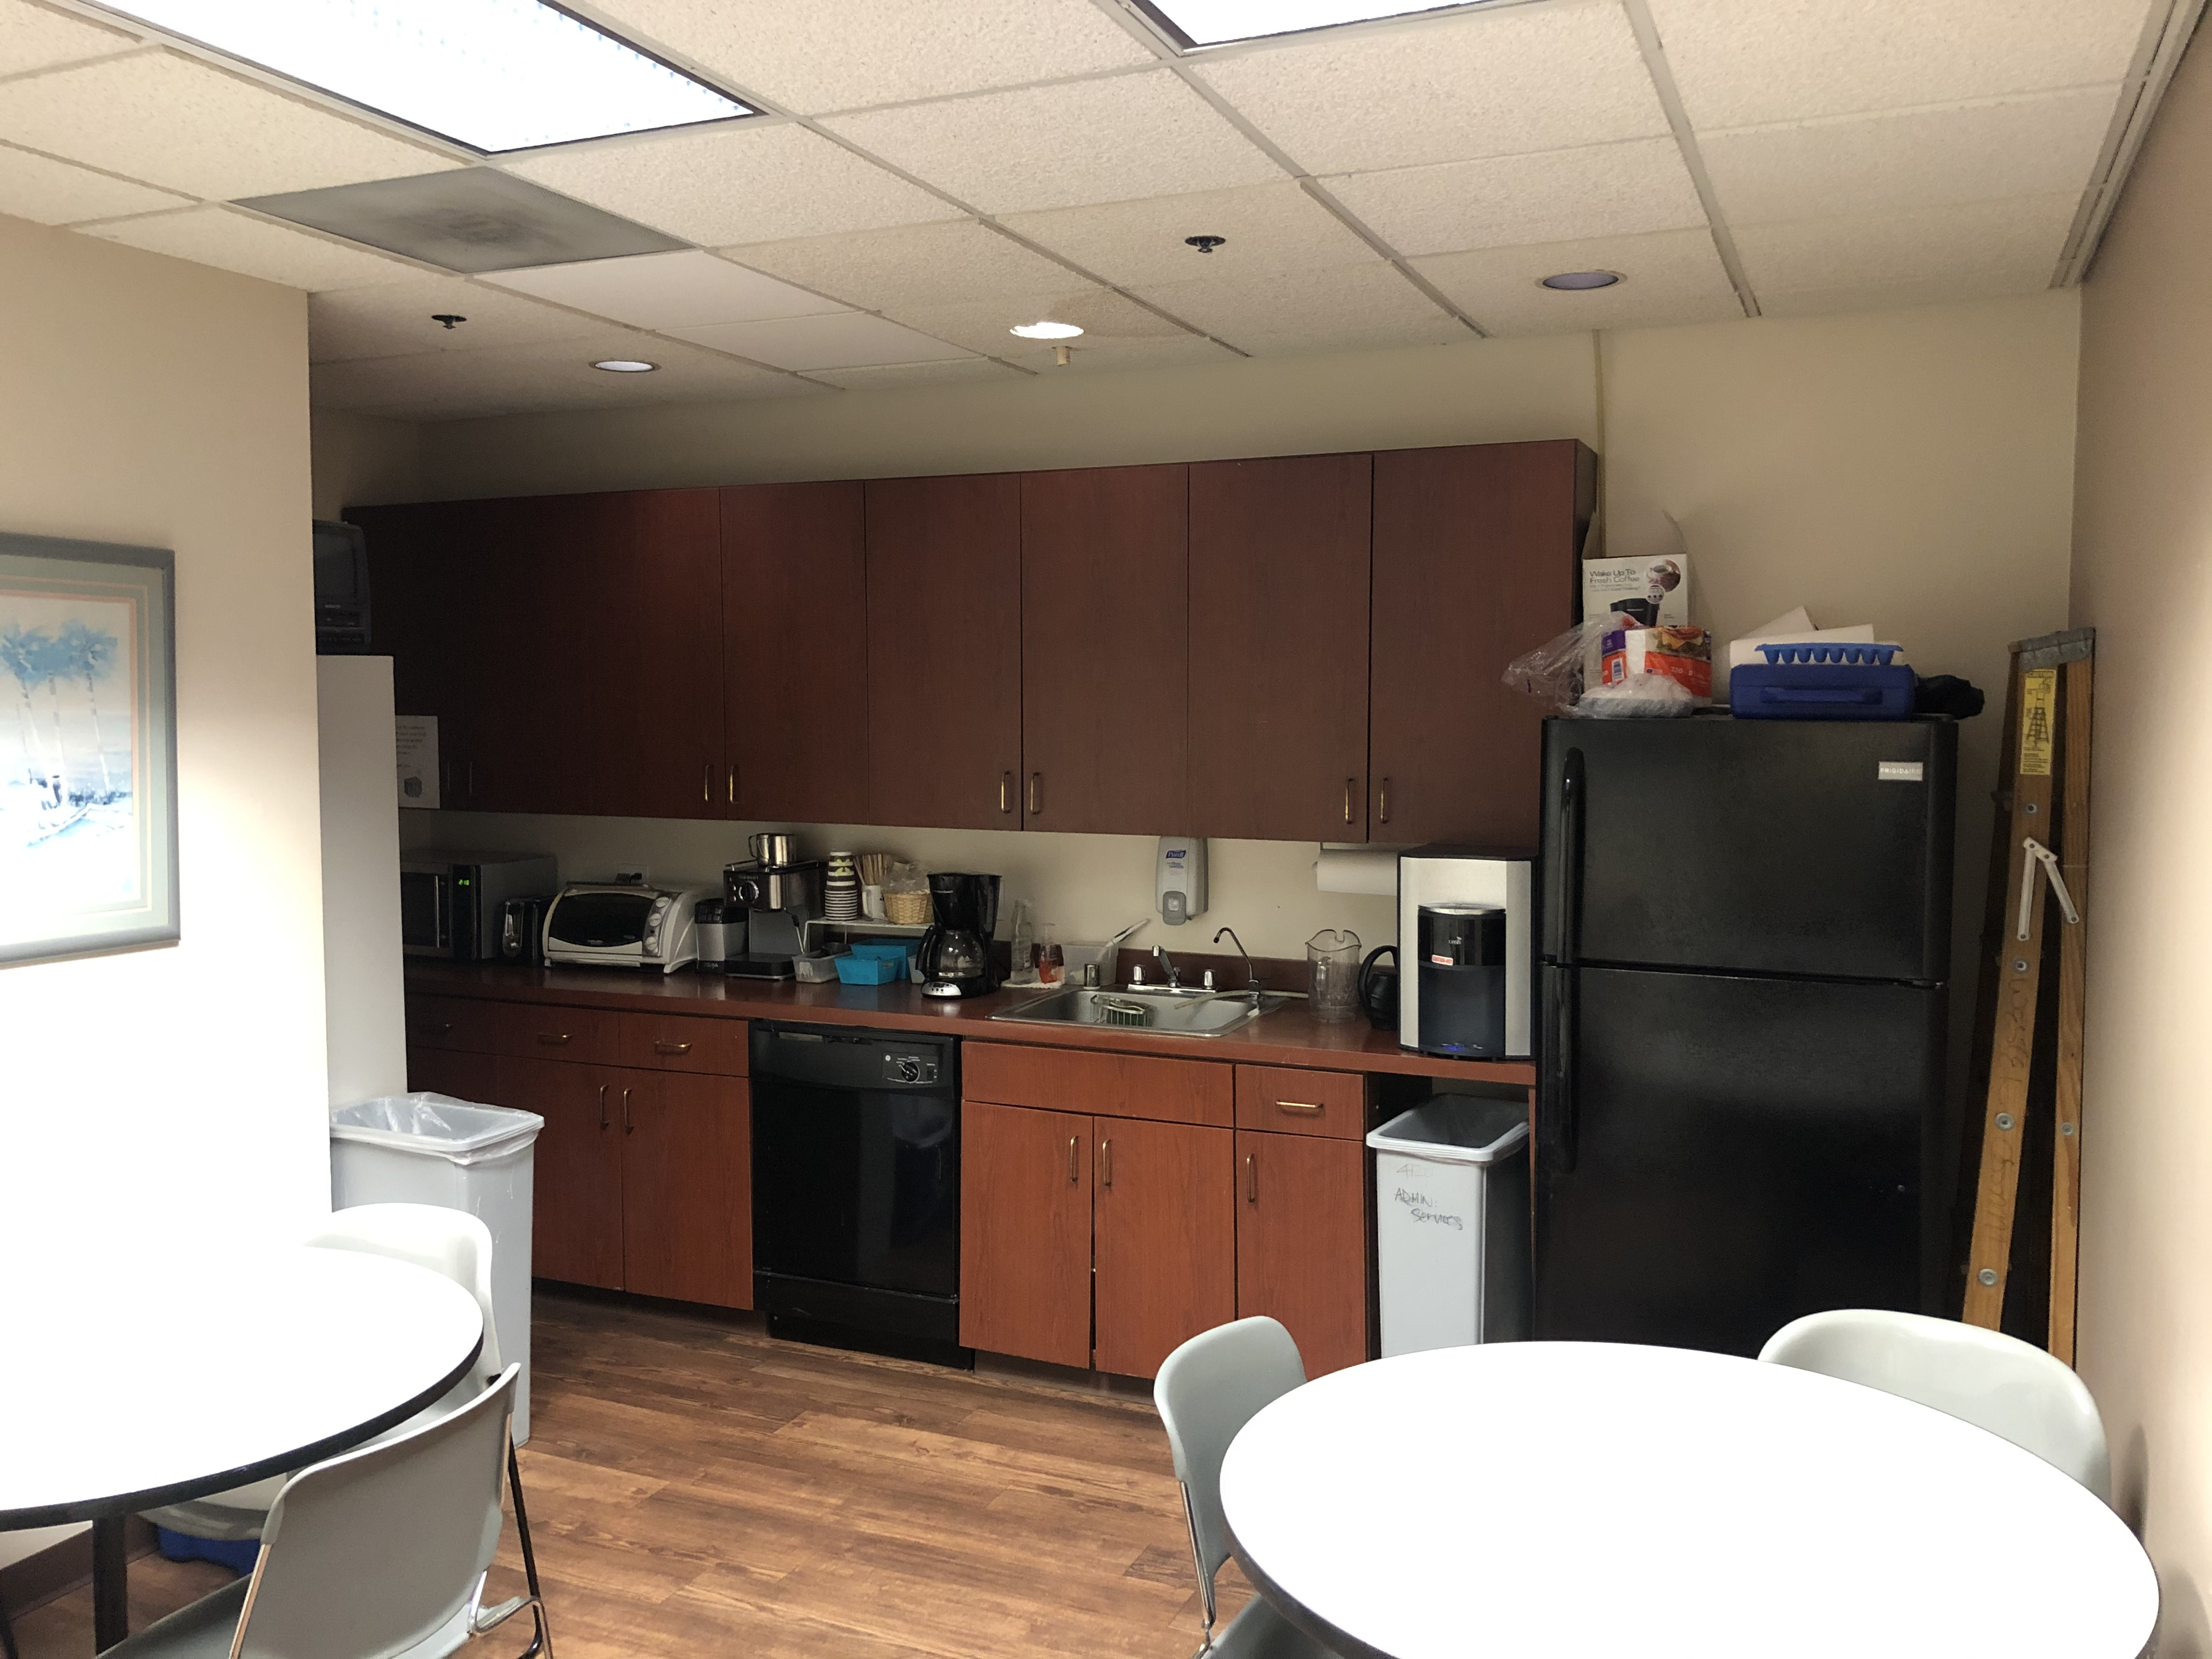 9710 Scranton Rd Sublease San Diego, CA 92121 Kitchen